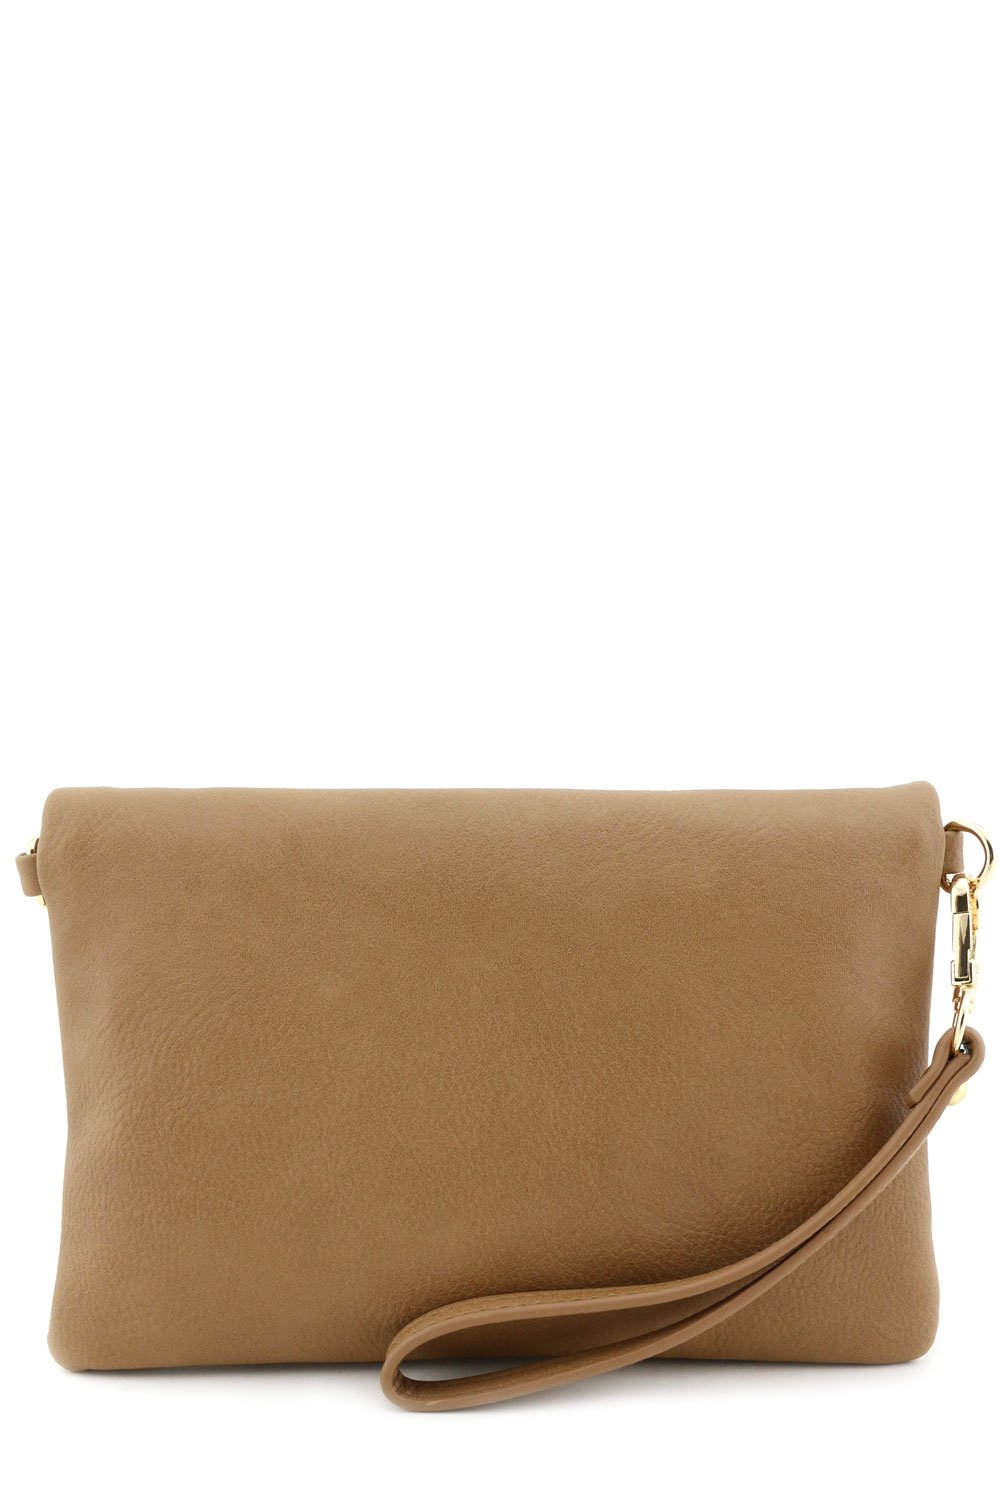 Envelope Wristlet Clutch Crossbody Bag with Chain Strap Stone by FashionPuzzle (Image #7)